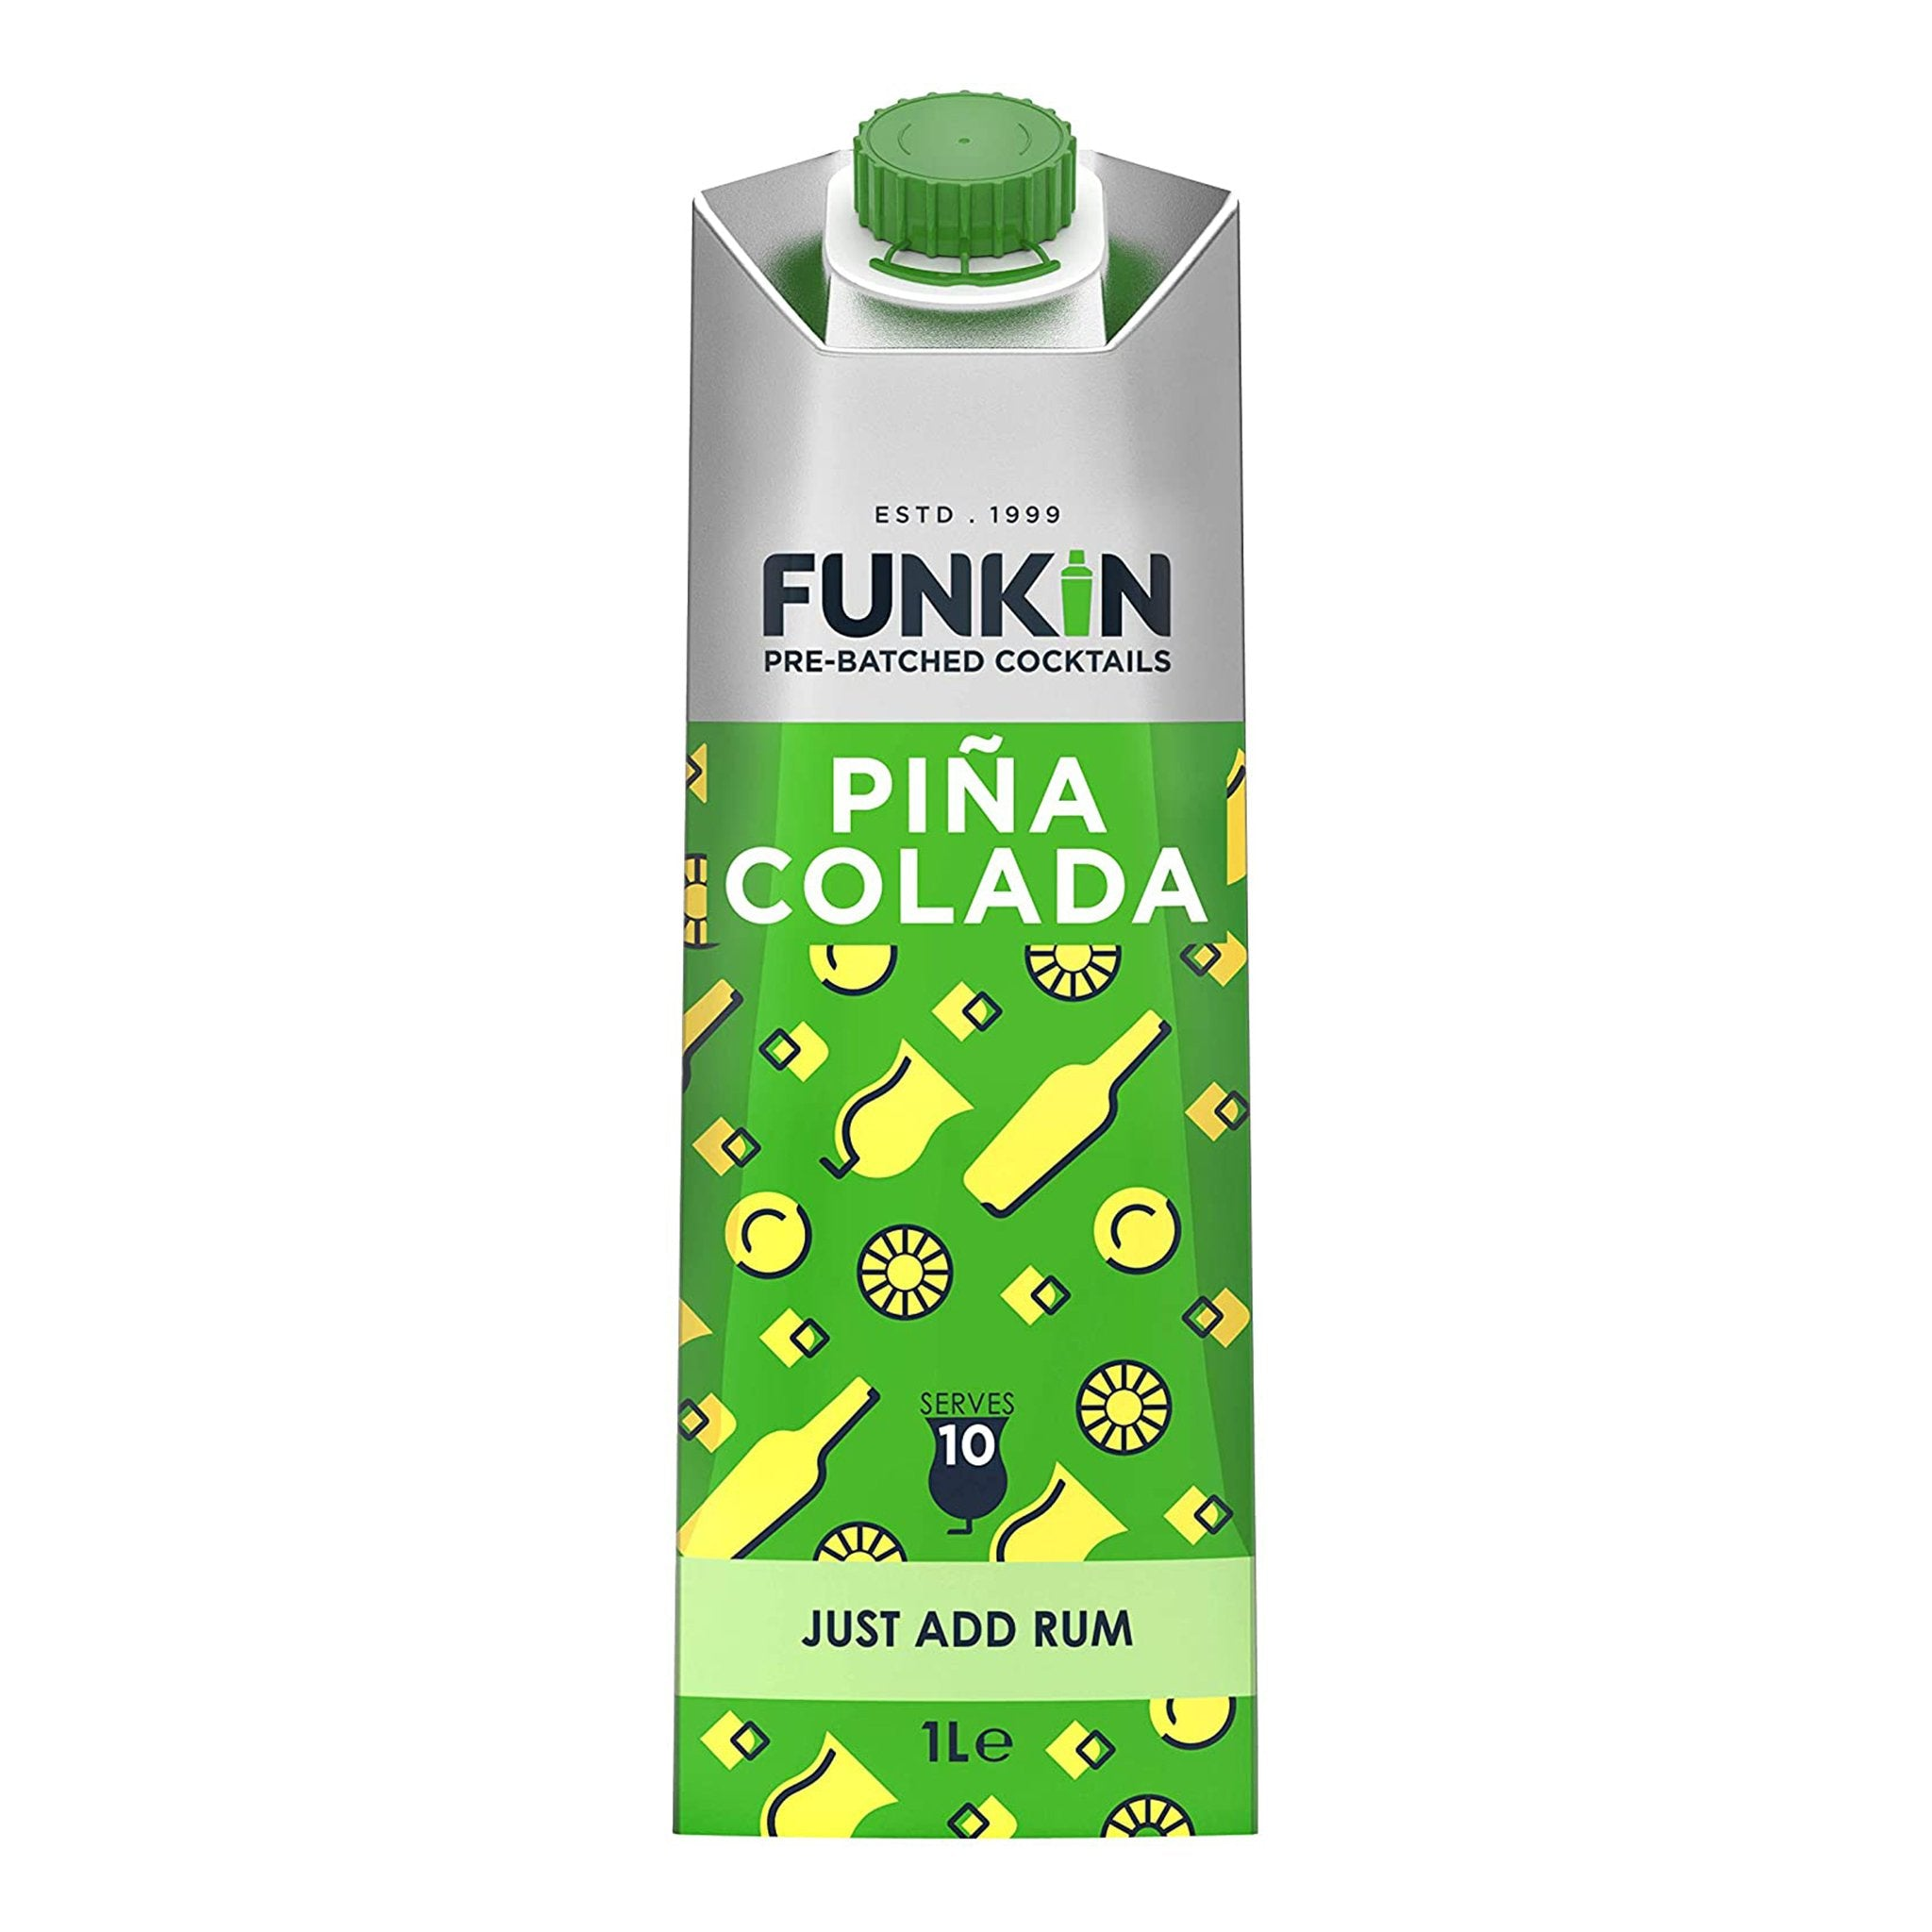 Funkin Pre-Batched Cocktails Piña Colada 1L, Cocktail Mixes by Drinks Shop